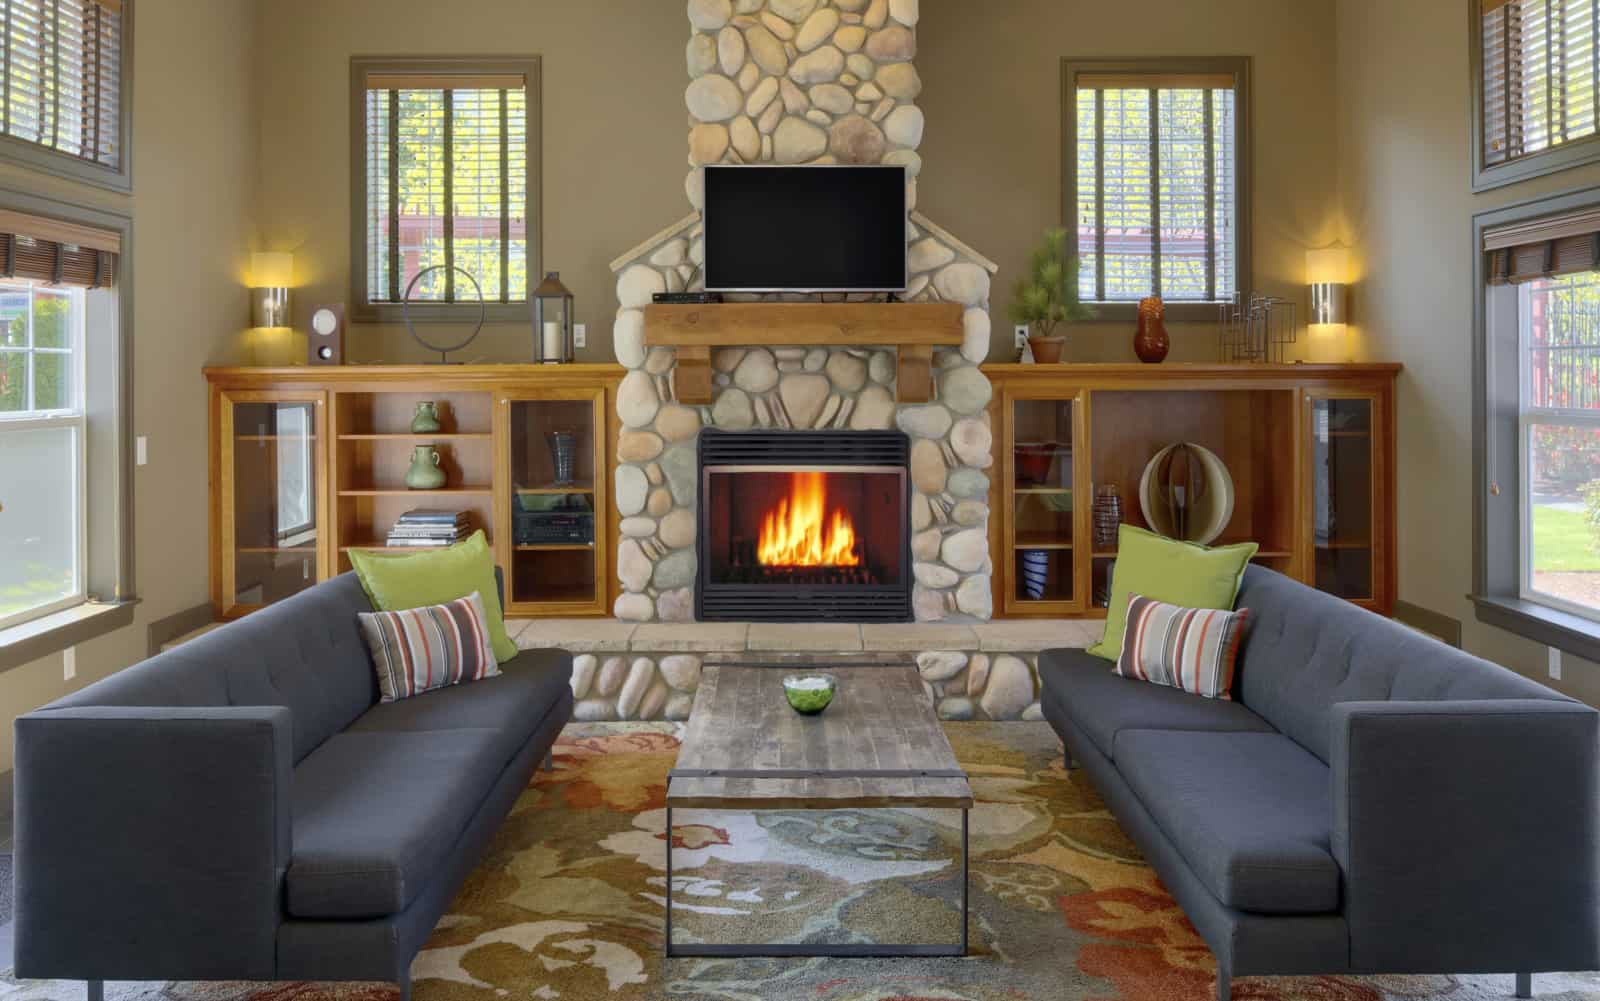 Interior of common area with stone fireplace, built-in shelves, couches, and coffee table.